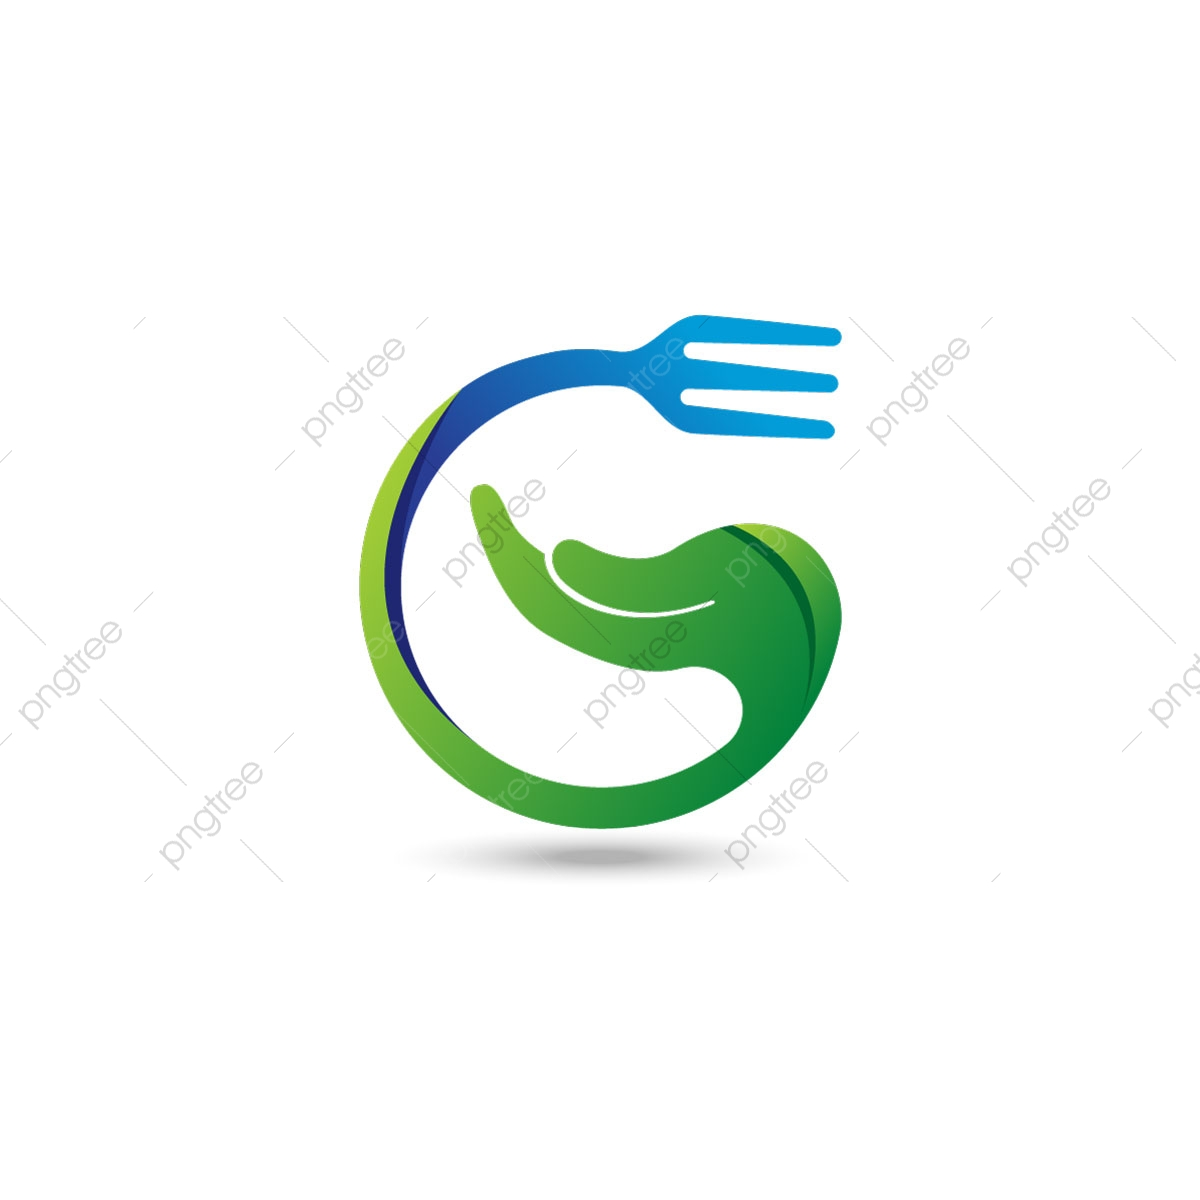 Hand Care Logo Fork And Hand Symbol Healthy Icon Logo Care Hand Png And Vector With Transparent Background For Free Download